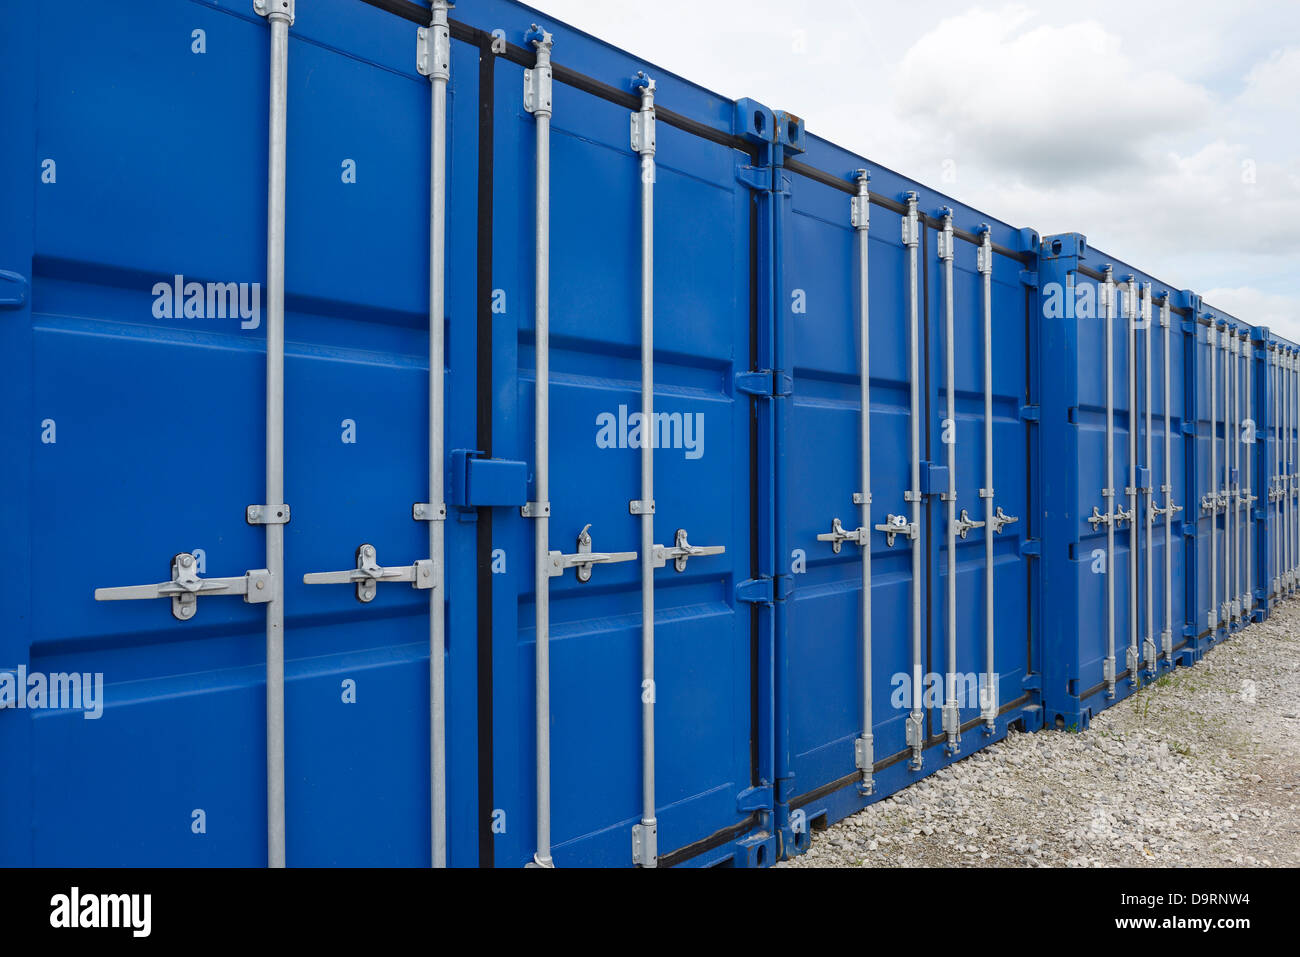 Row of blue metal shipping containers - Stock Image